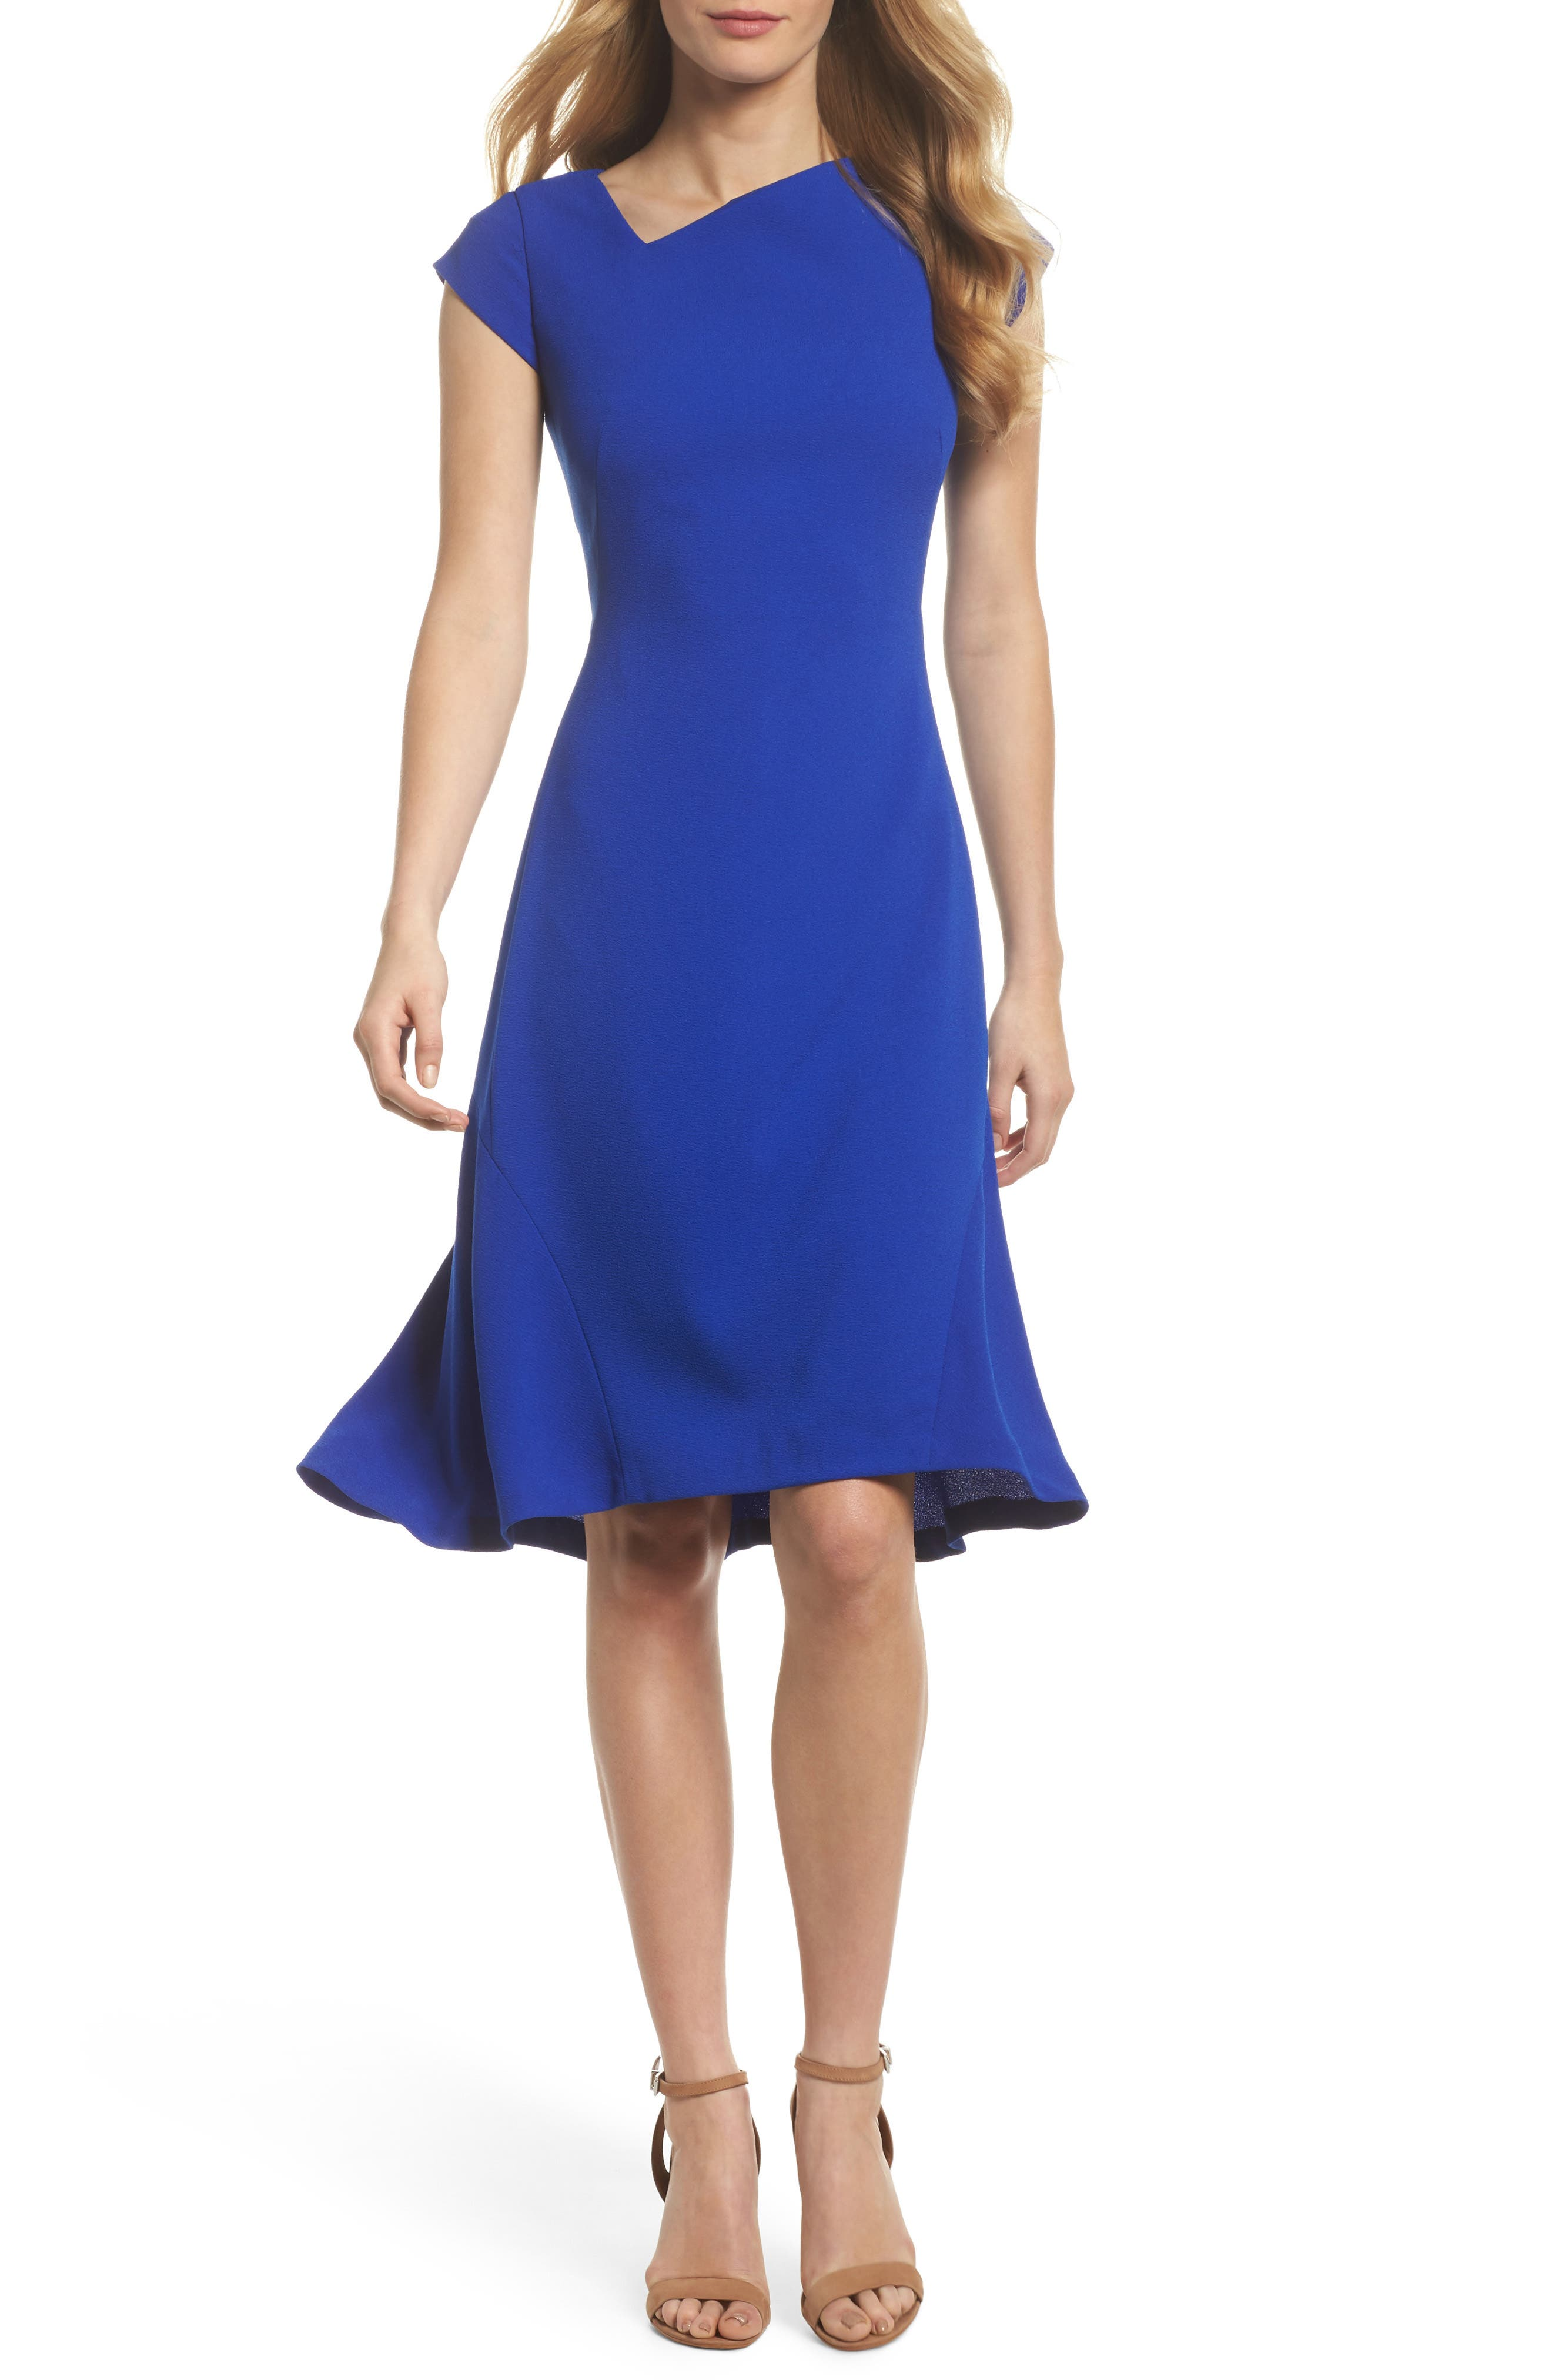 Alternate Image 1 Selected - Maggy London Asymmetrical Neck Fit & Flare Dress